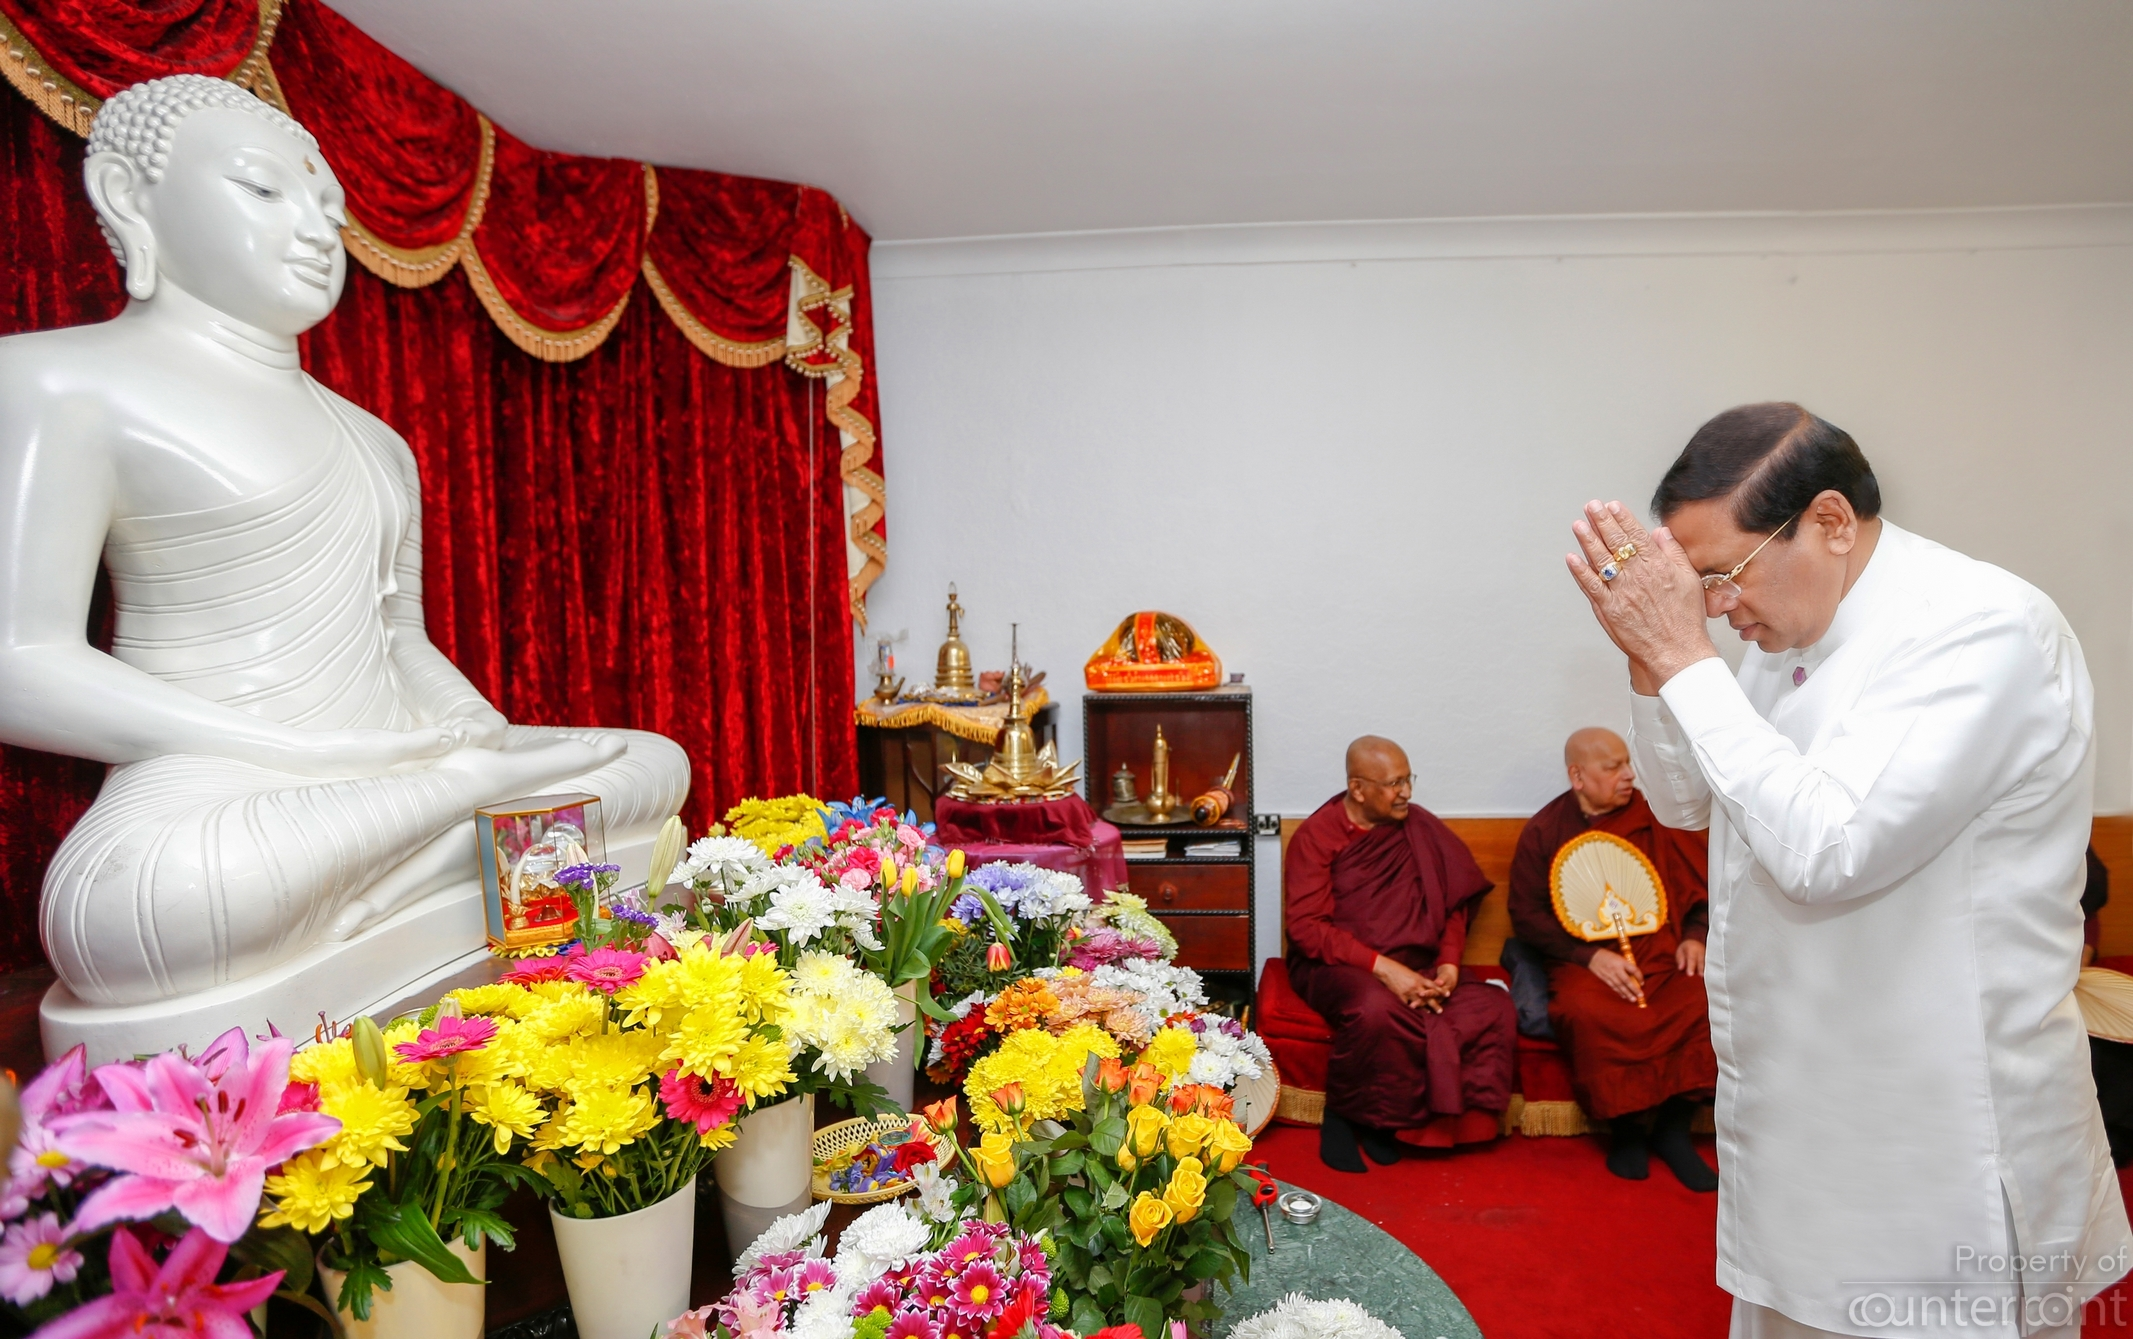 President Sirisena, in London to attend CHOGM participated in religious ceremonies connected with the Avurudu festivities at the London Buddhist Vihara. (President's media unit)